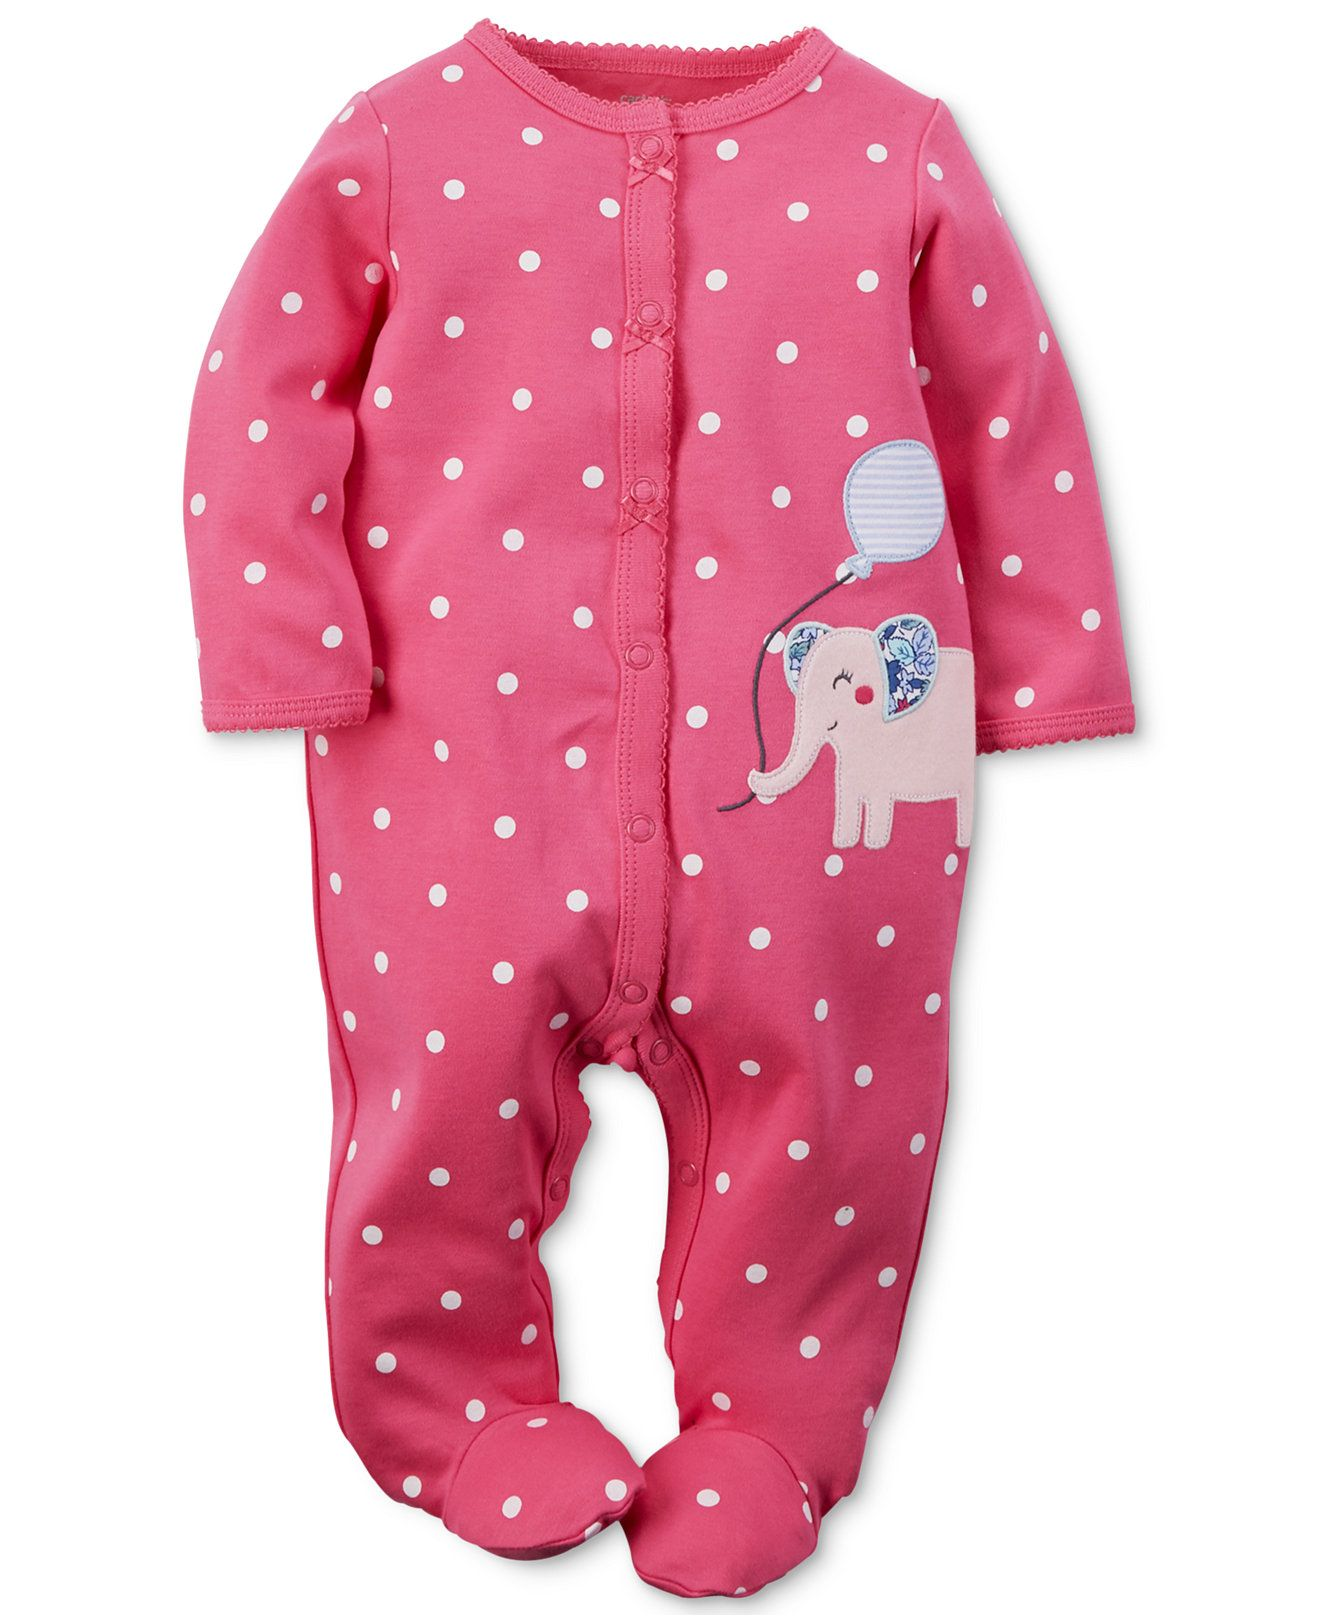 856b22f8 Carter's Baby Girls' Pink Elephant Coverall - Baby Girl (0 ...